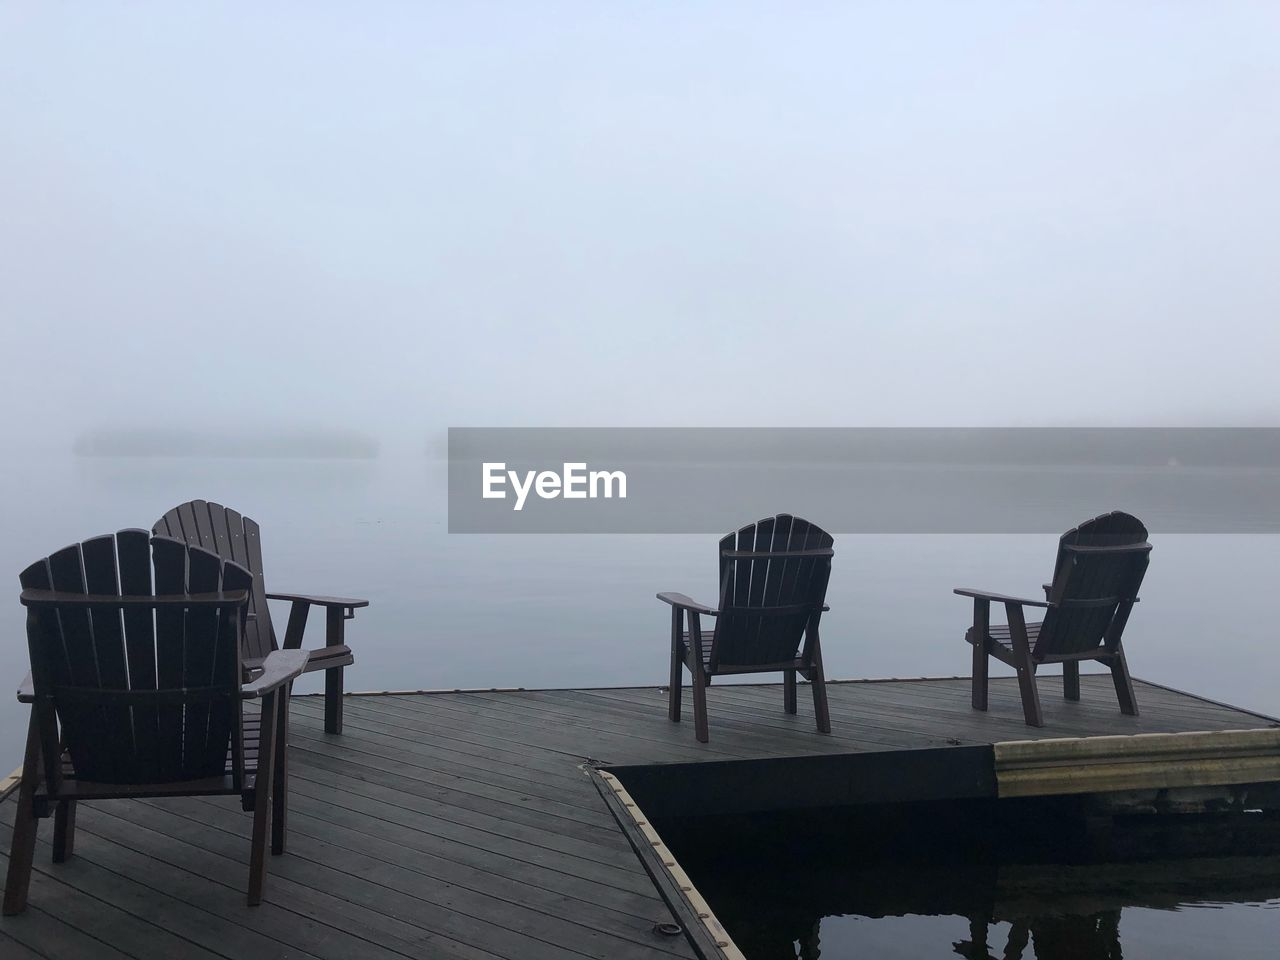 Empty chairs on pier over lake against sky